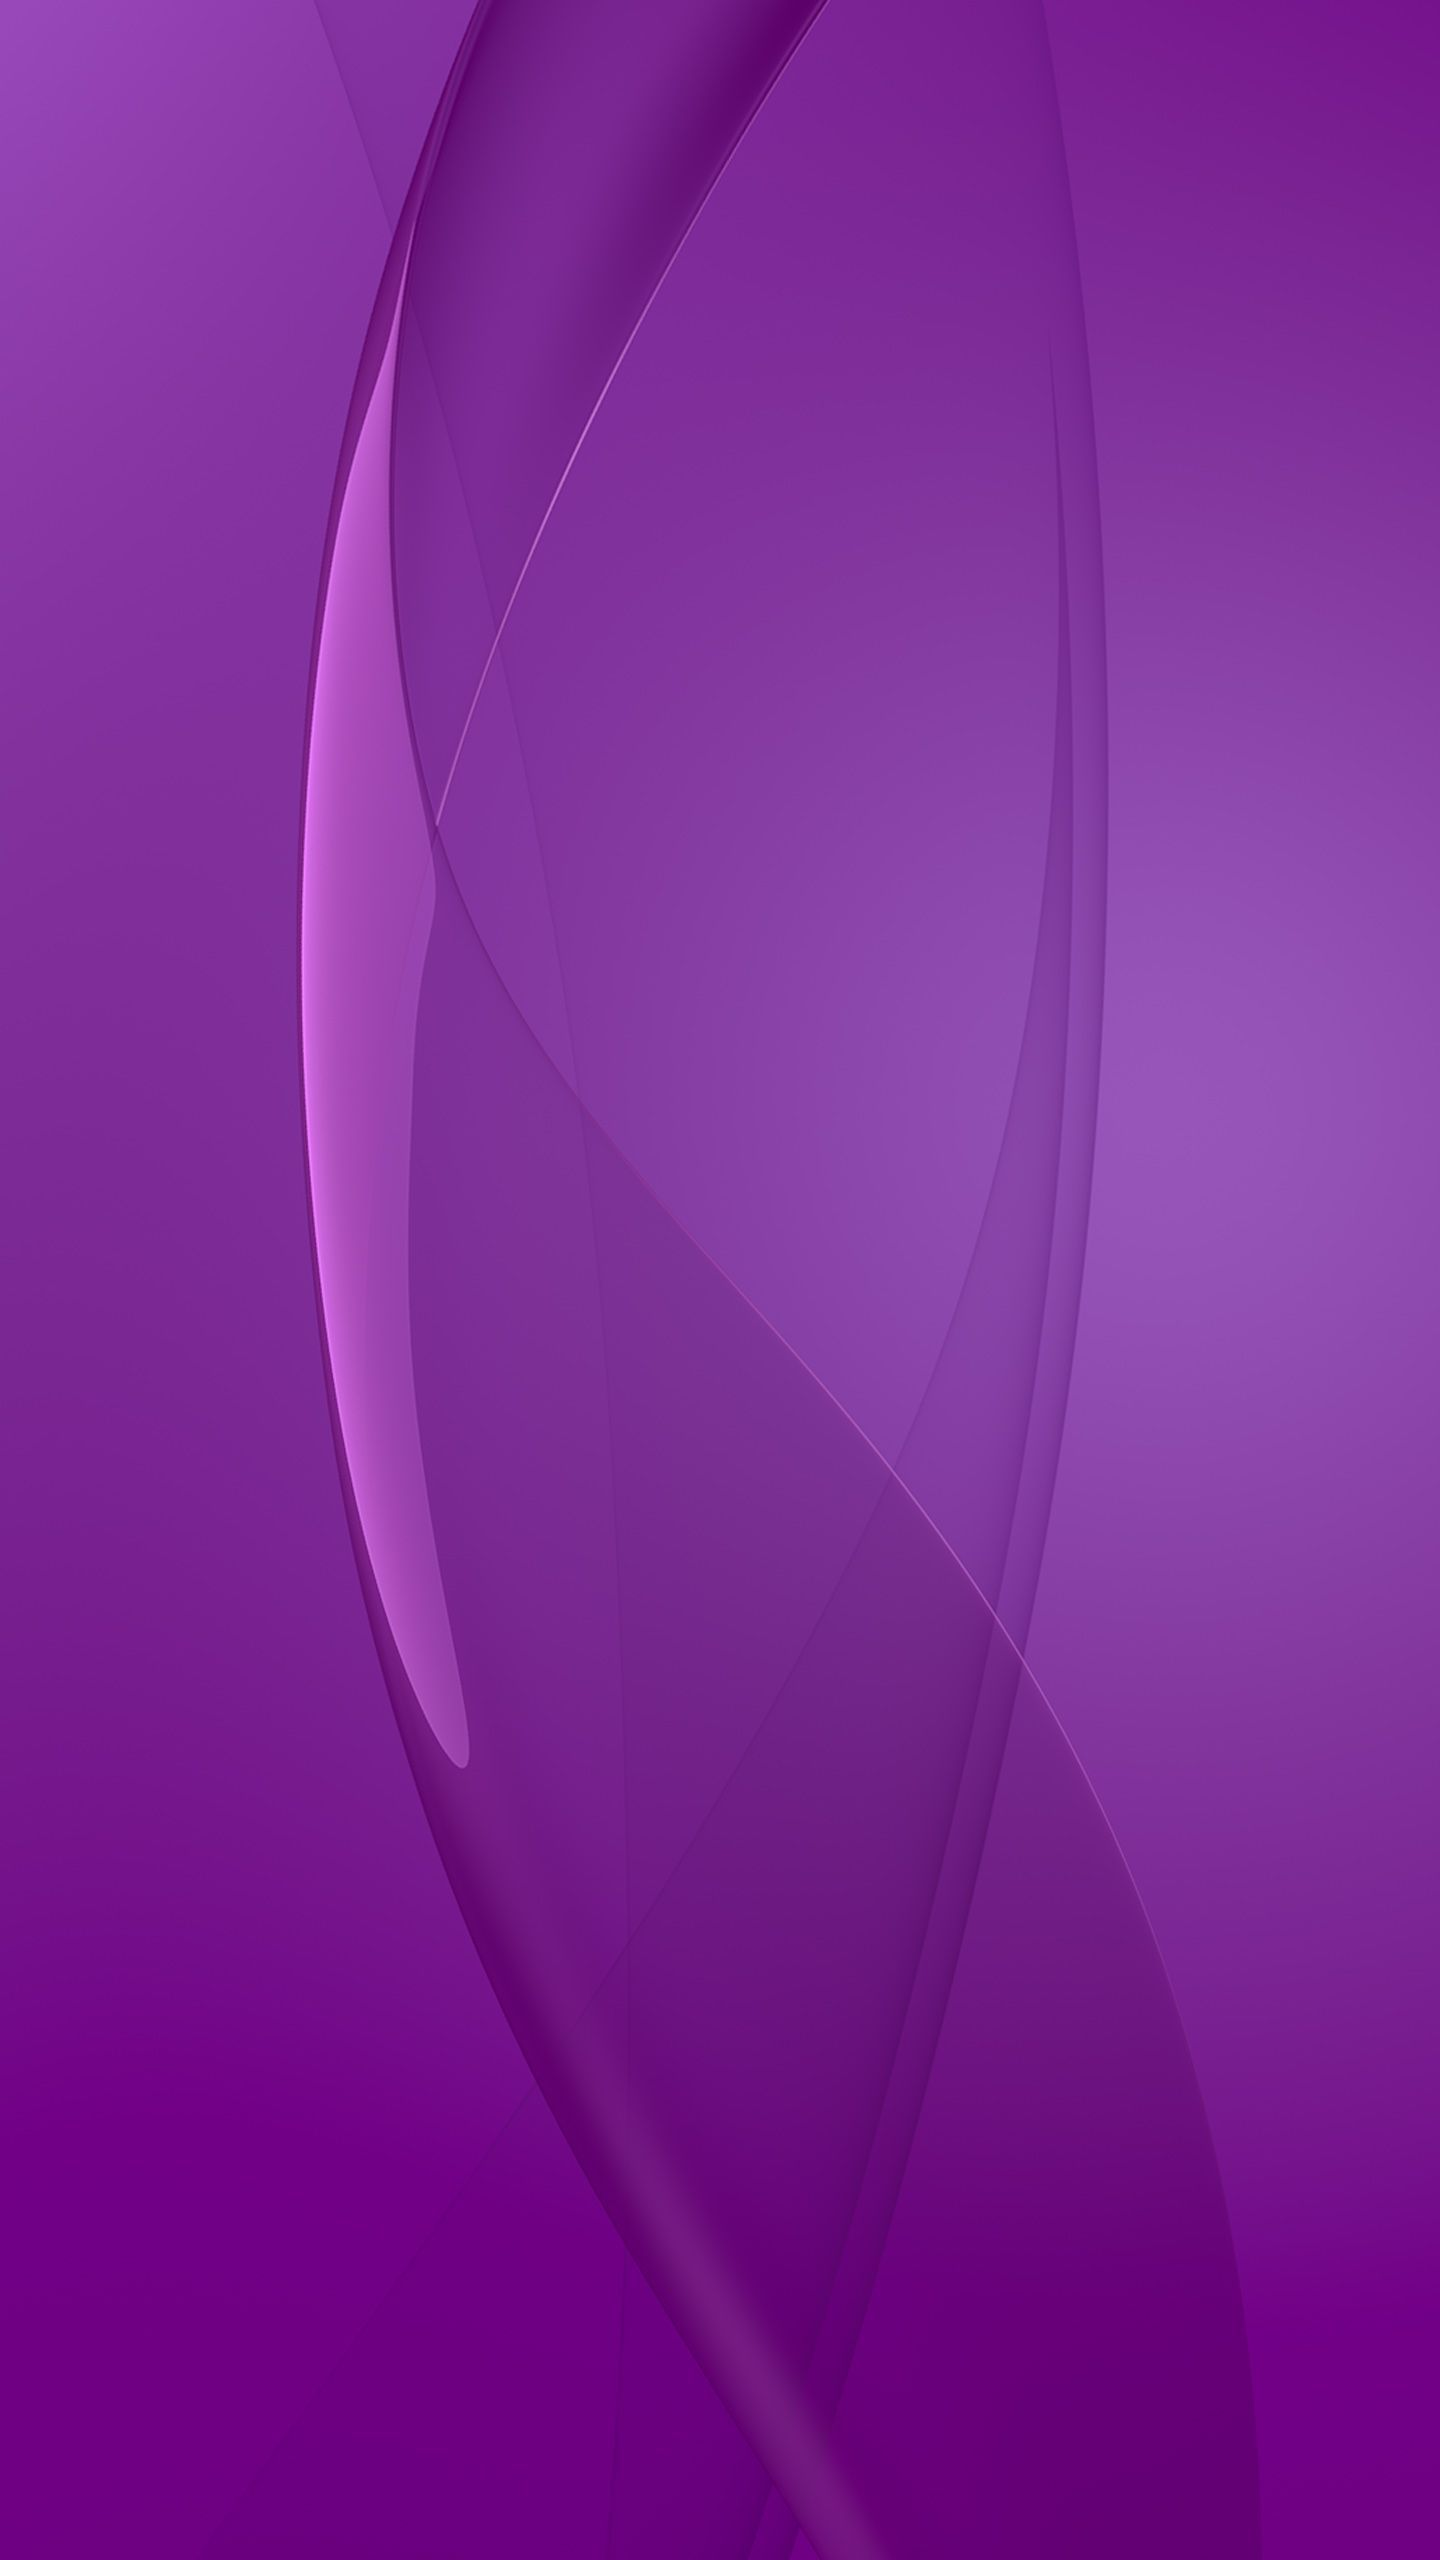 Purple Abstract Mobile Wallpaper Http Wallpapers And Backgrounds Net Purple Abstract Mobile Wal Pink Wallpaper Mobile Purple Wallpaper Phone Wallpaper Design